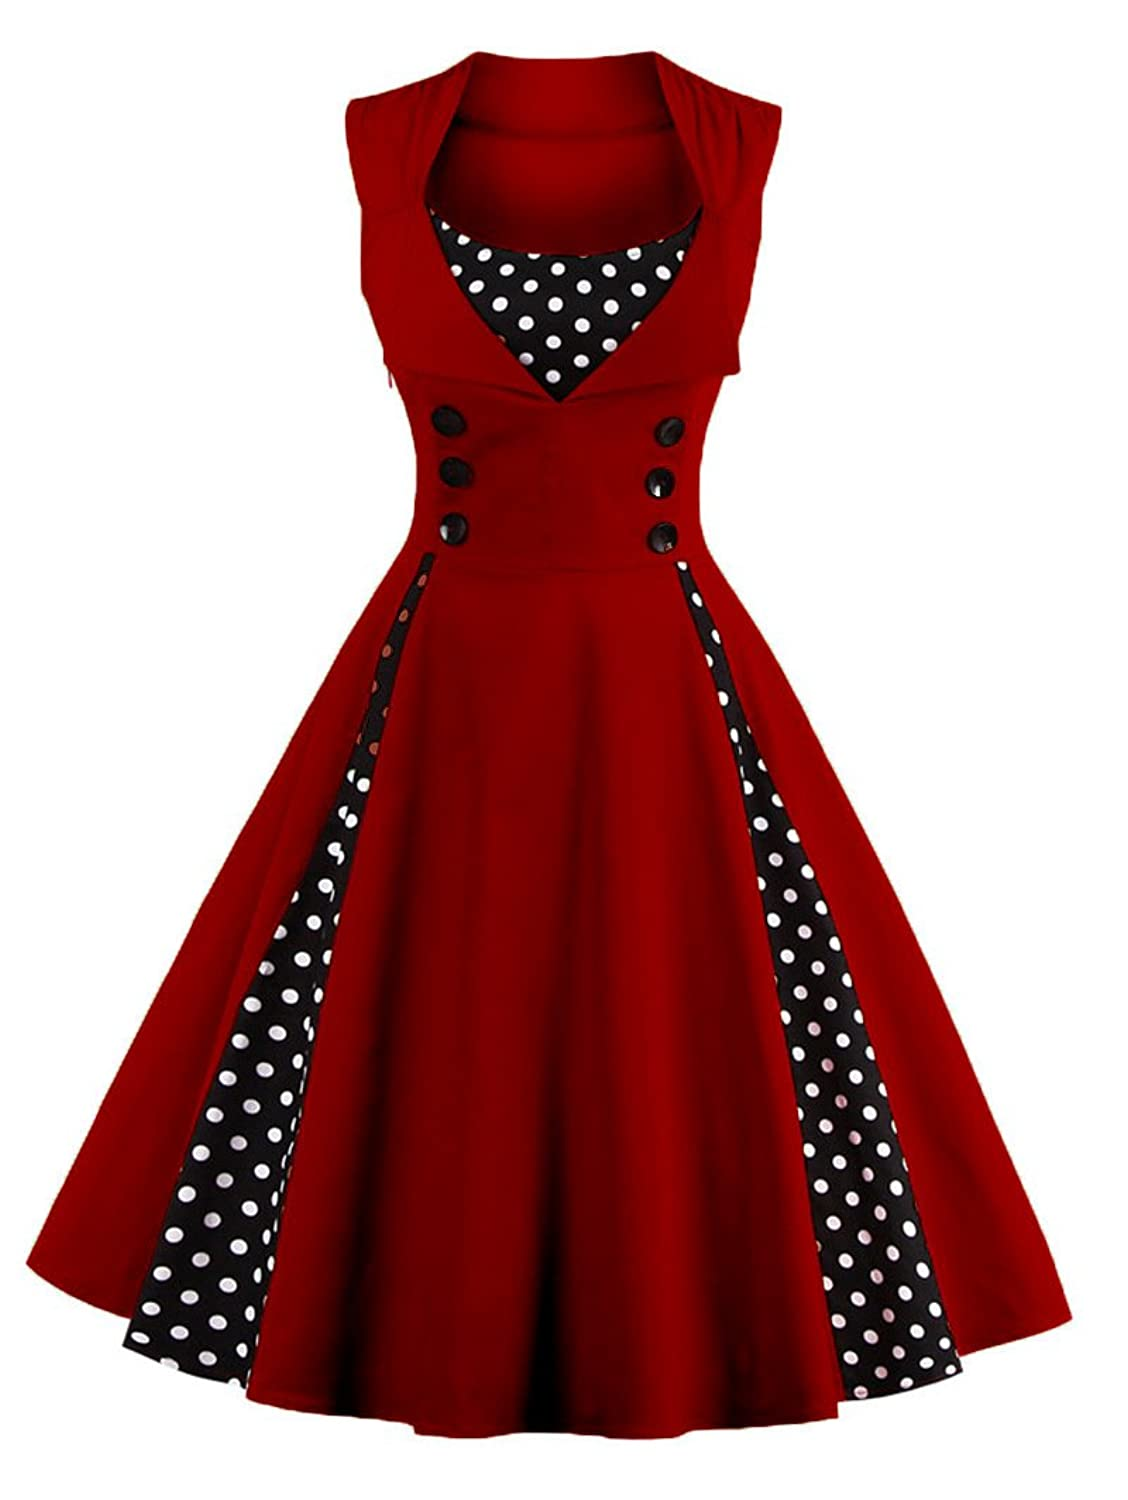 Vintage Christmas Dress Party Dresses Night Out Outfits Clarette Sneakers Christelle White Lunajany Womens Rockabilly Polka Dot